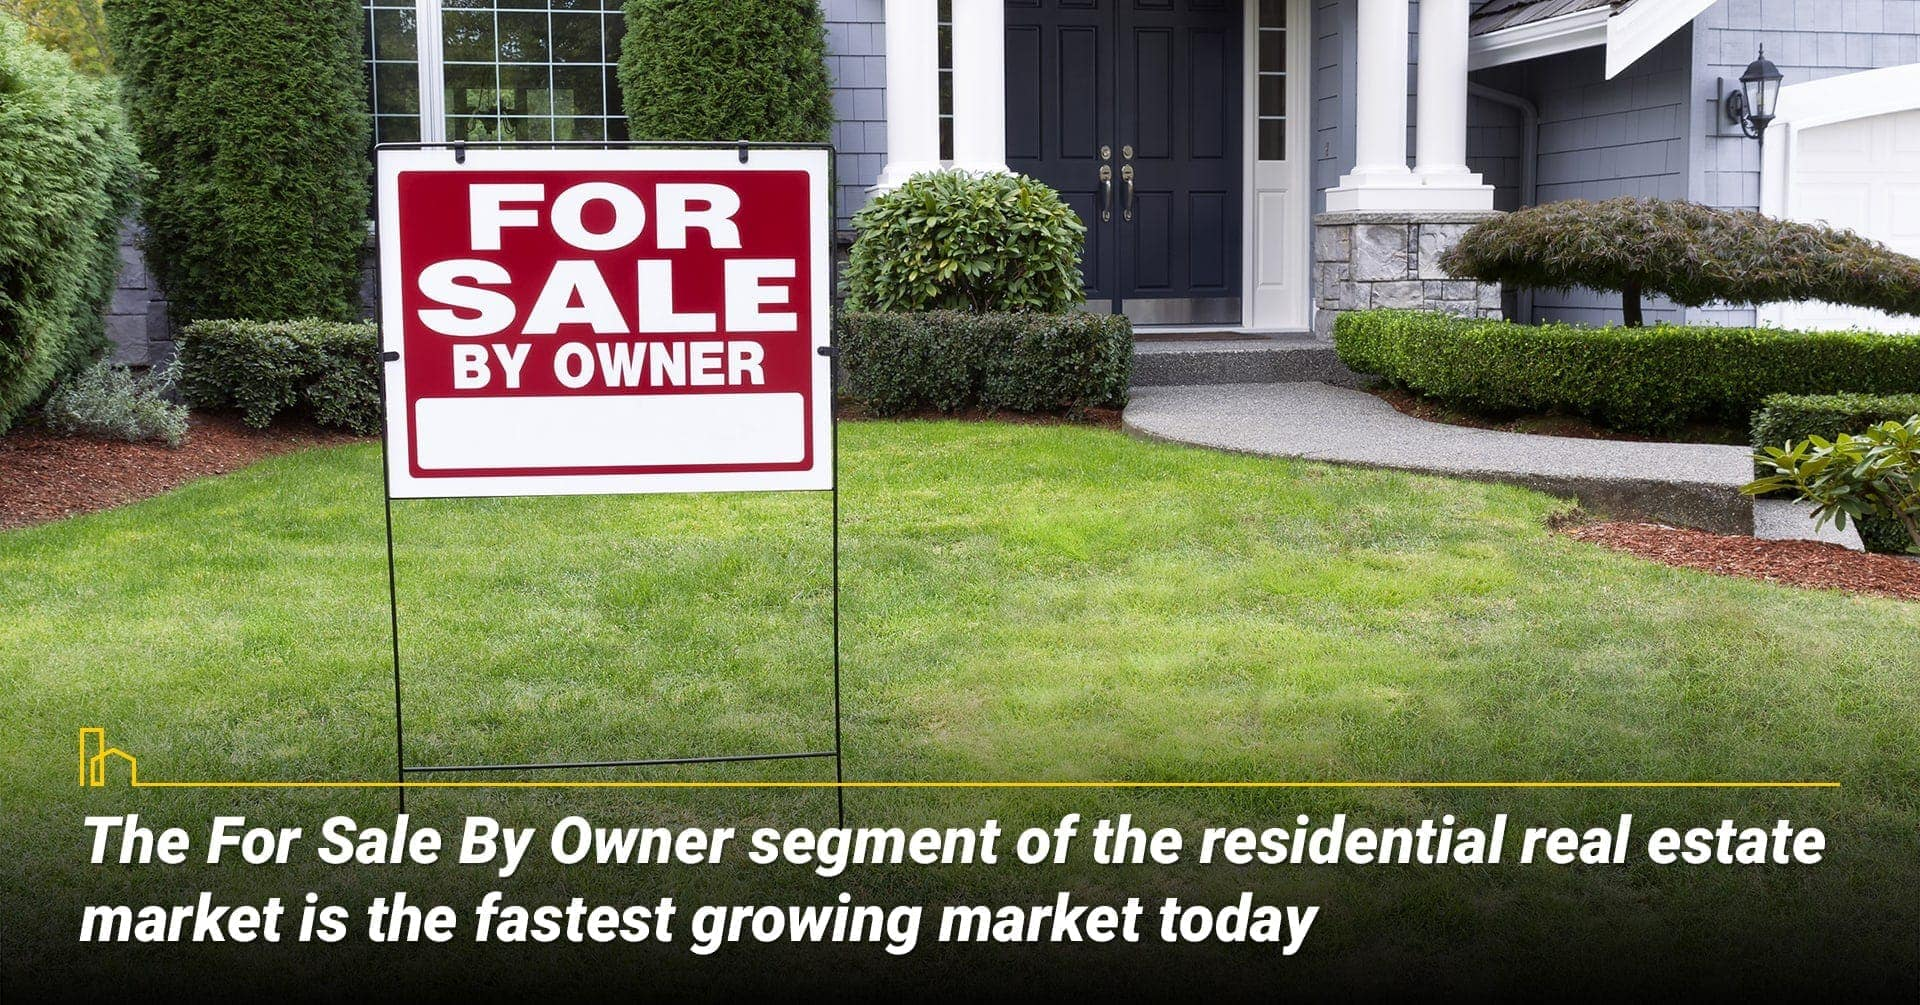 The For Sale By Owner segment of the residential real estate market is the fastest growing market today